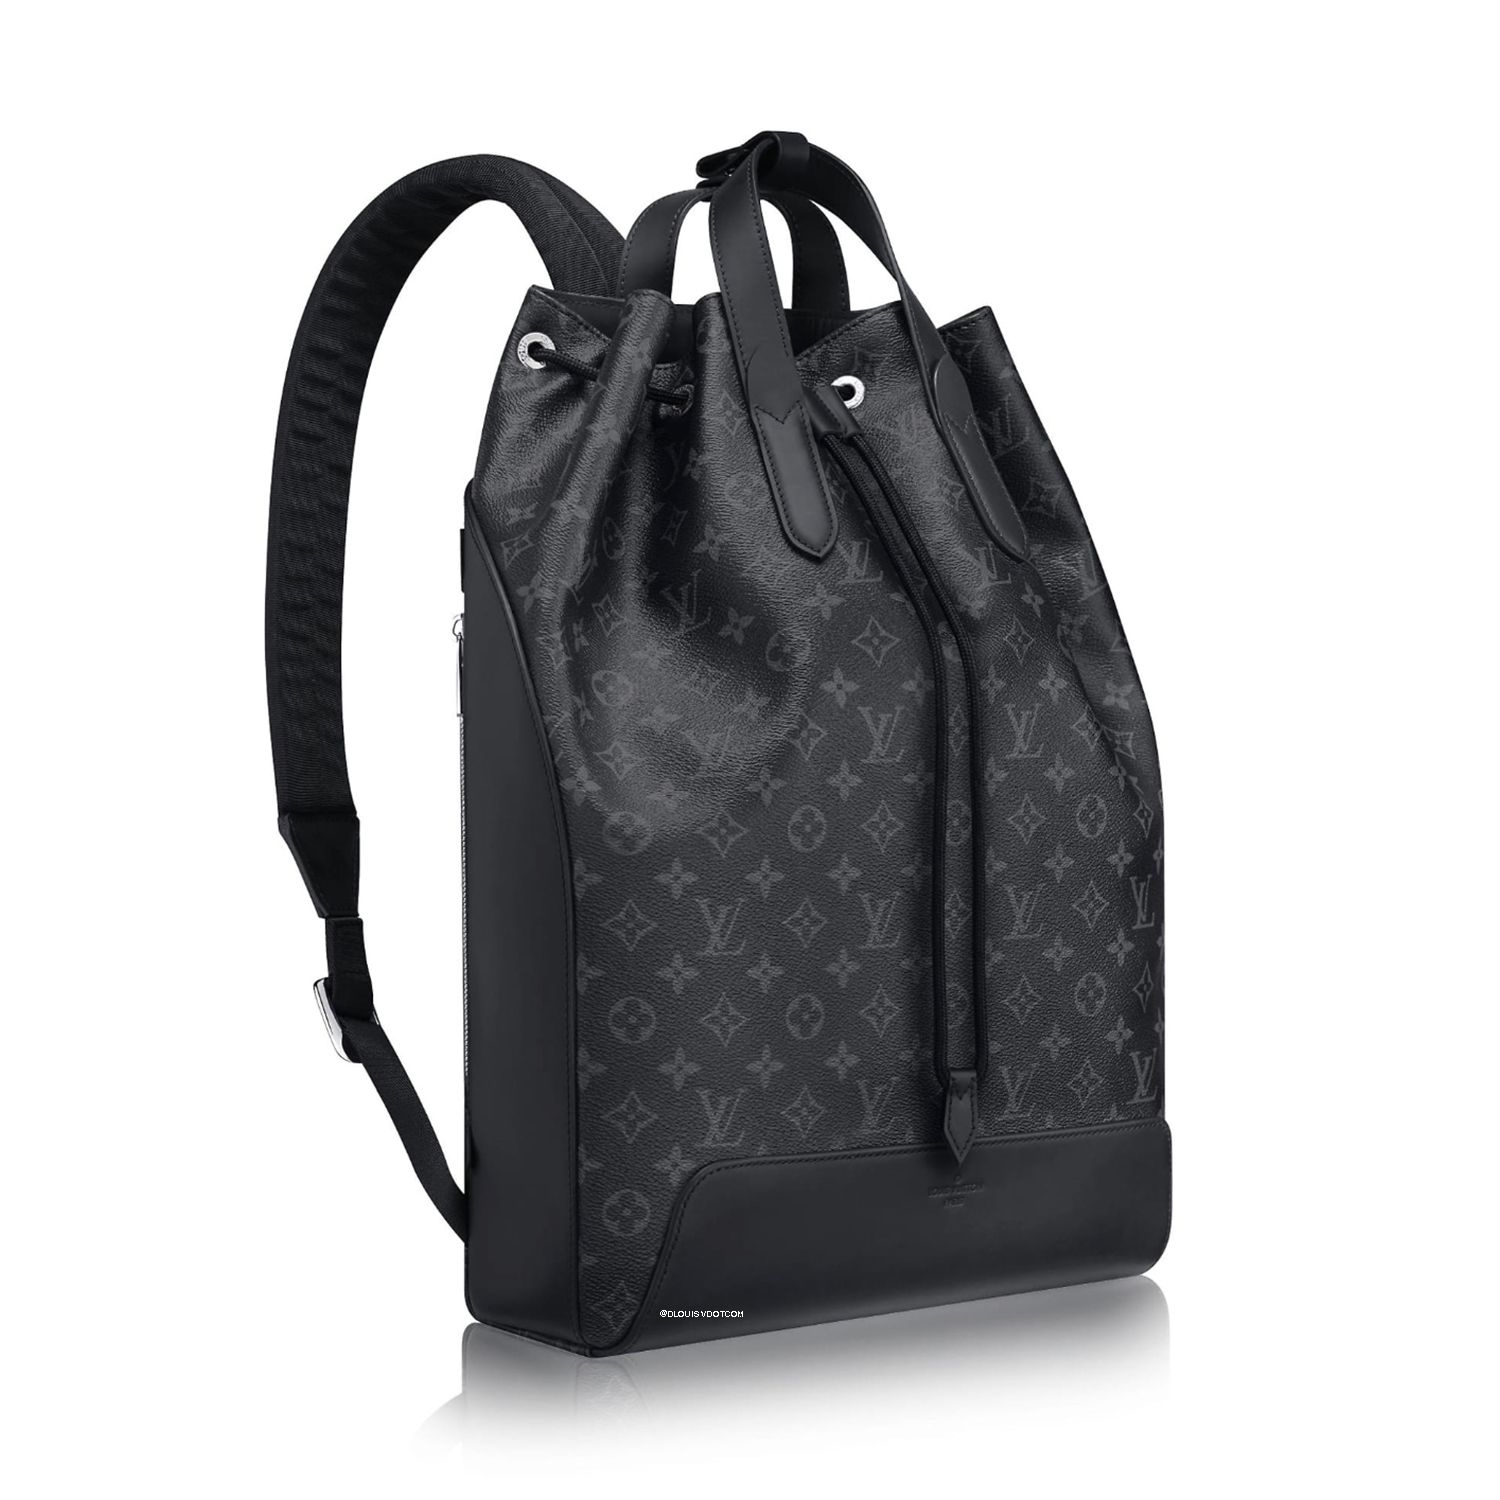 BACKPACK EXPLORER - €2010 $M40527MONOGRAM ECLIPSE